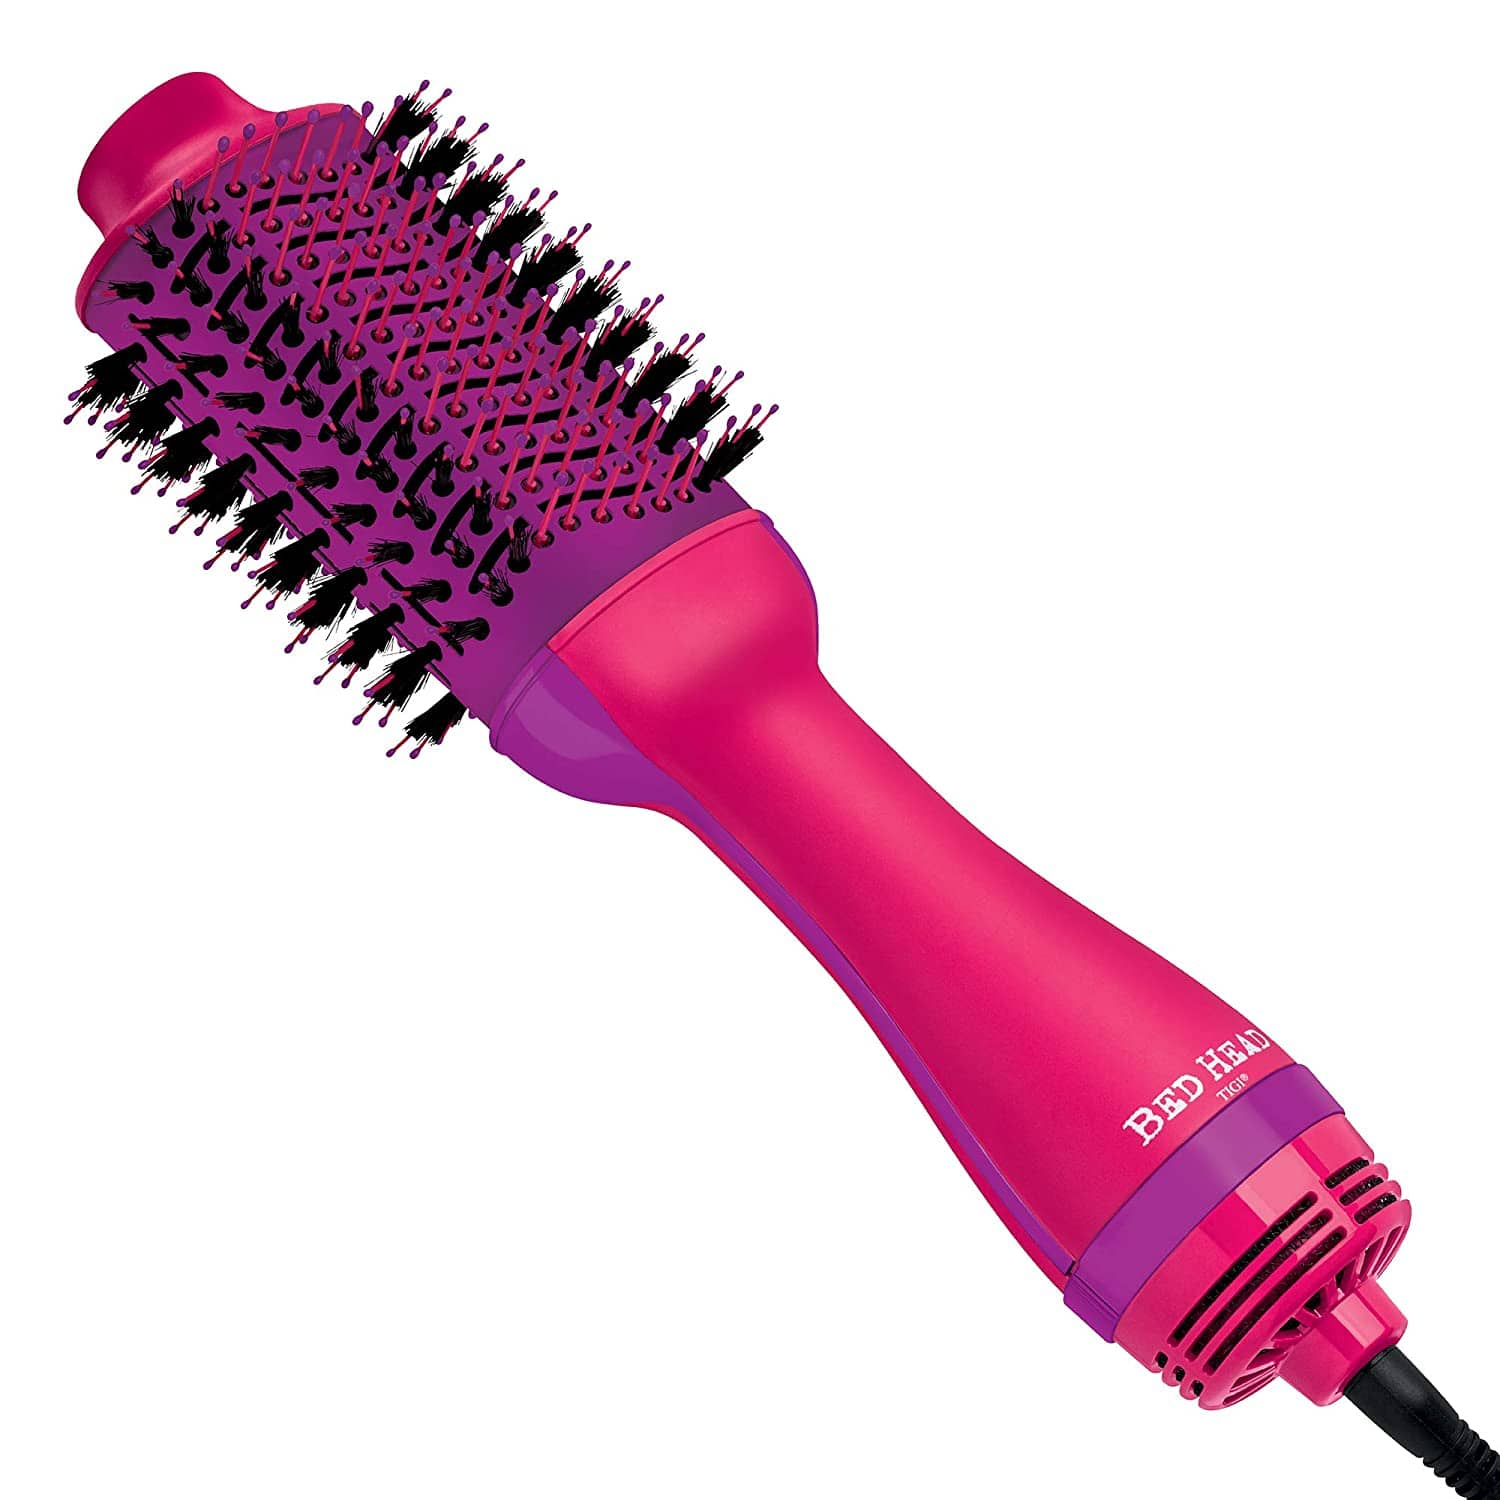 Bed Head Blow Out Freak One-Step Hair Dryer & Volumizer Hot Air Brush $23.70 + Free Shipping